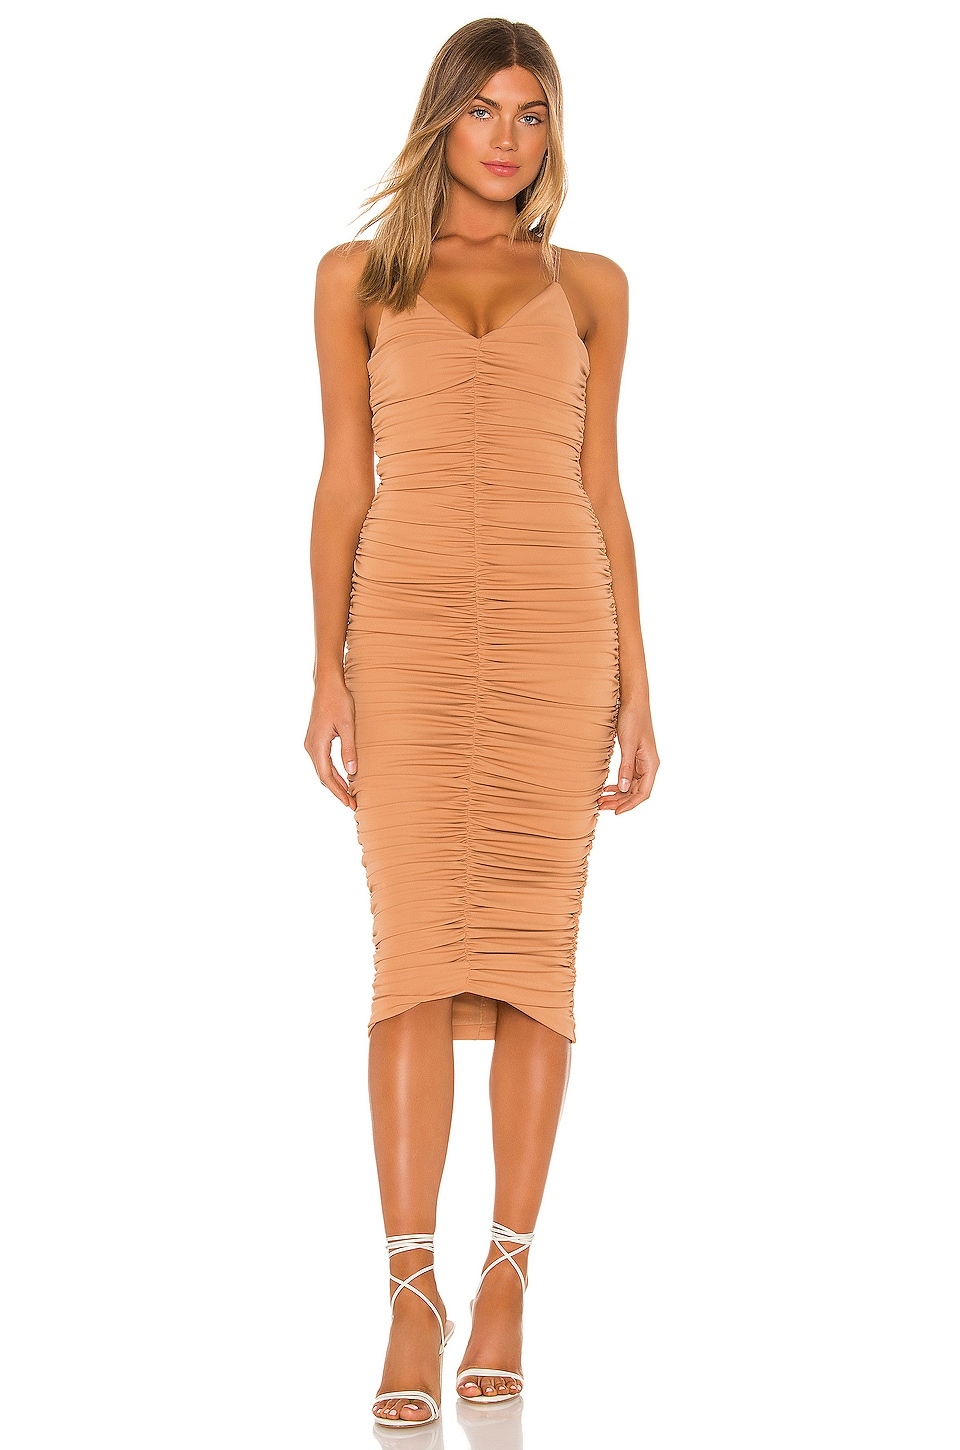 NBD Sagittarius Midi Dress in Nude